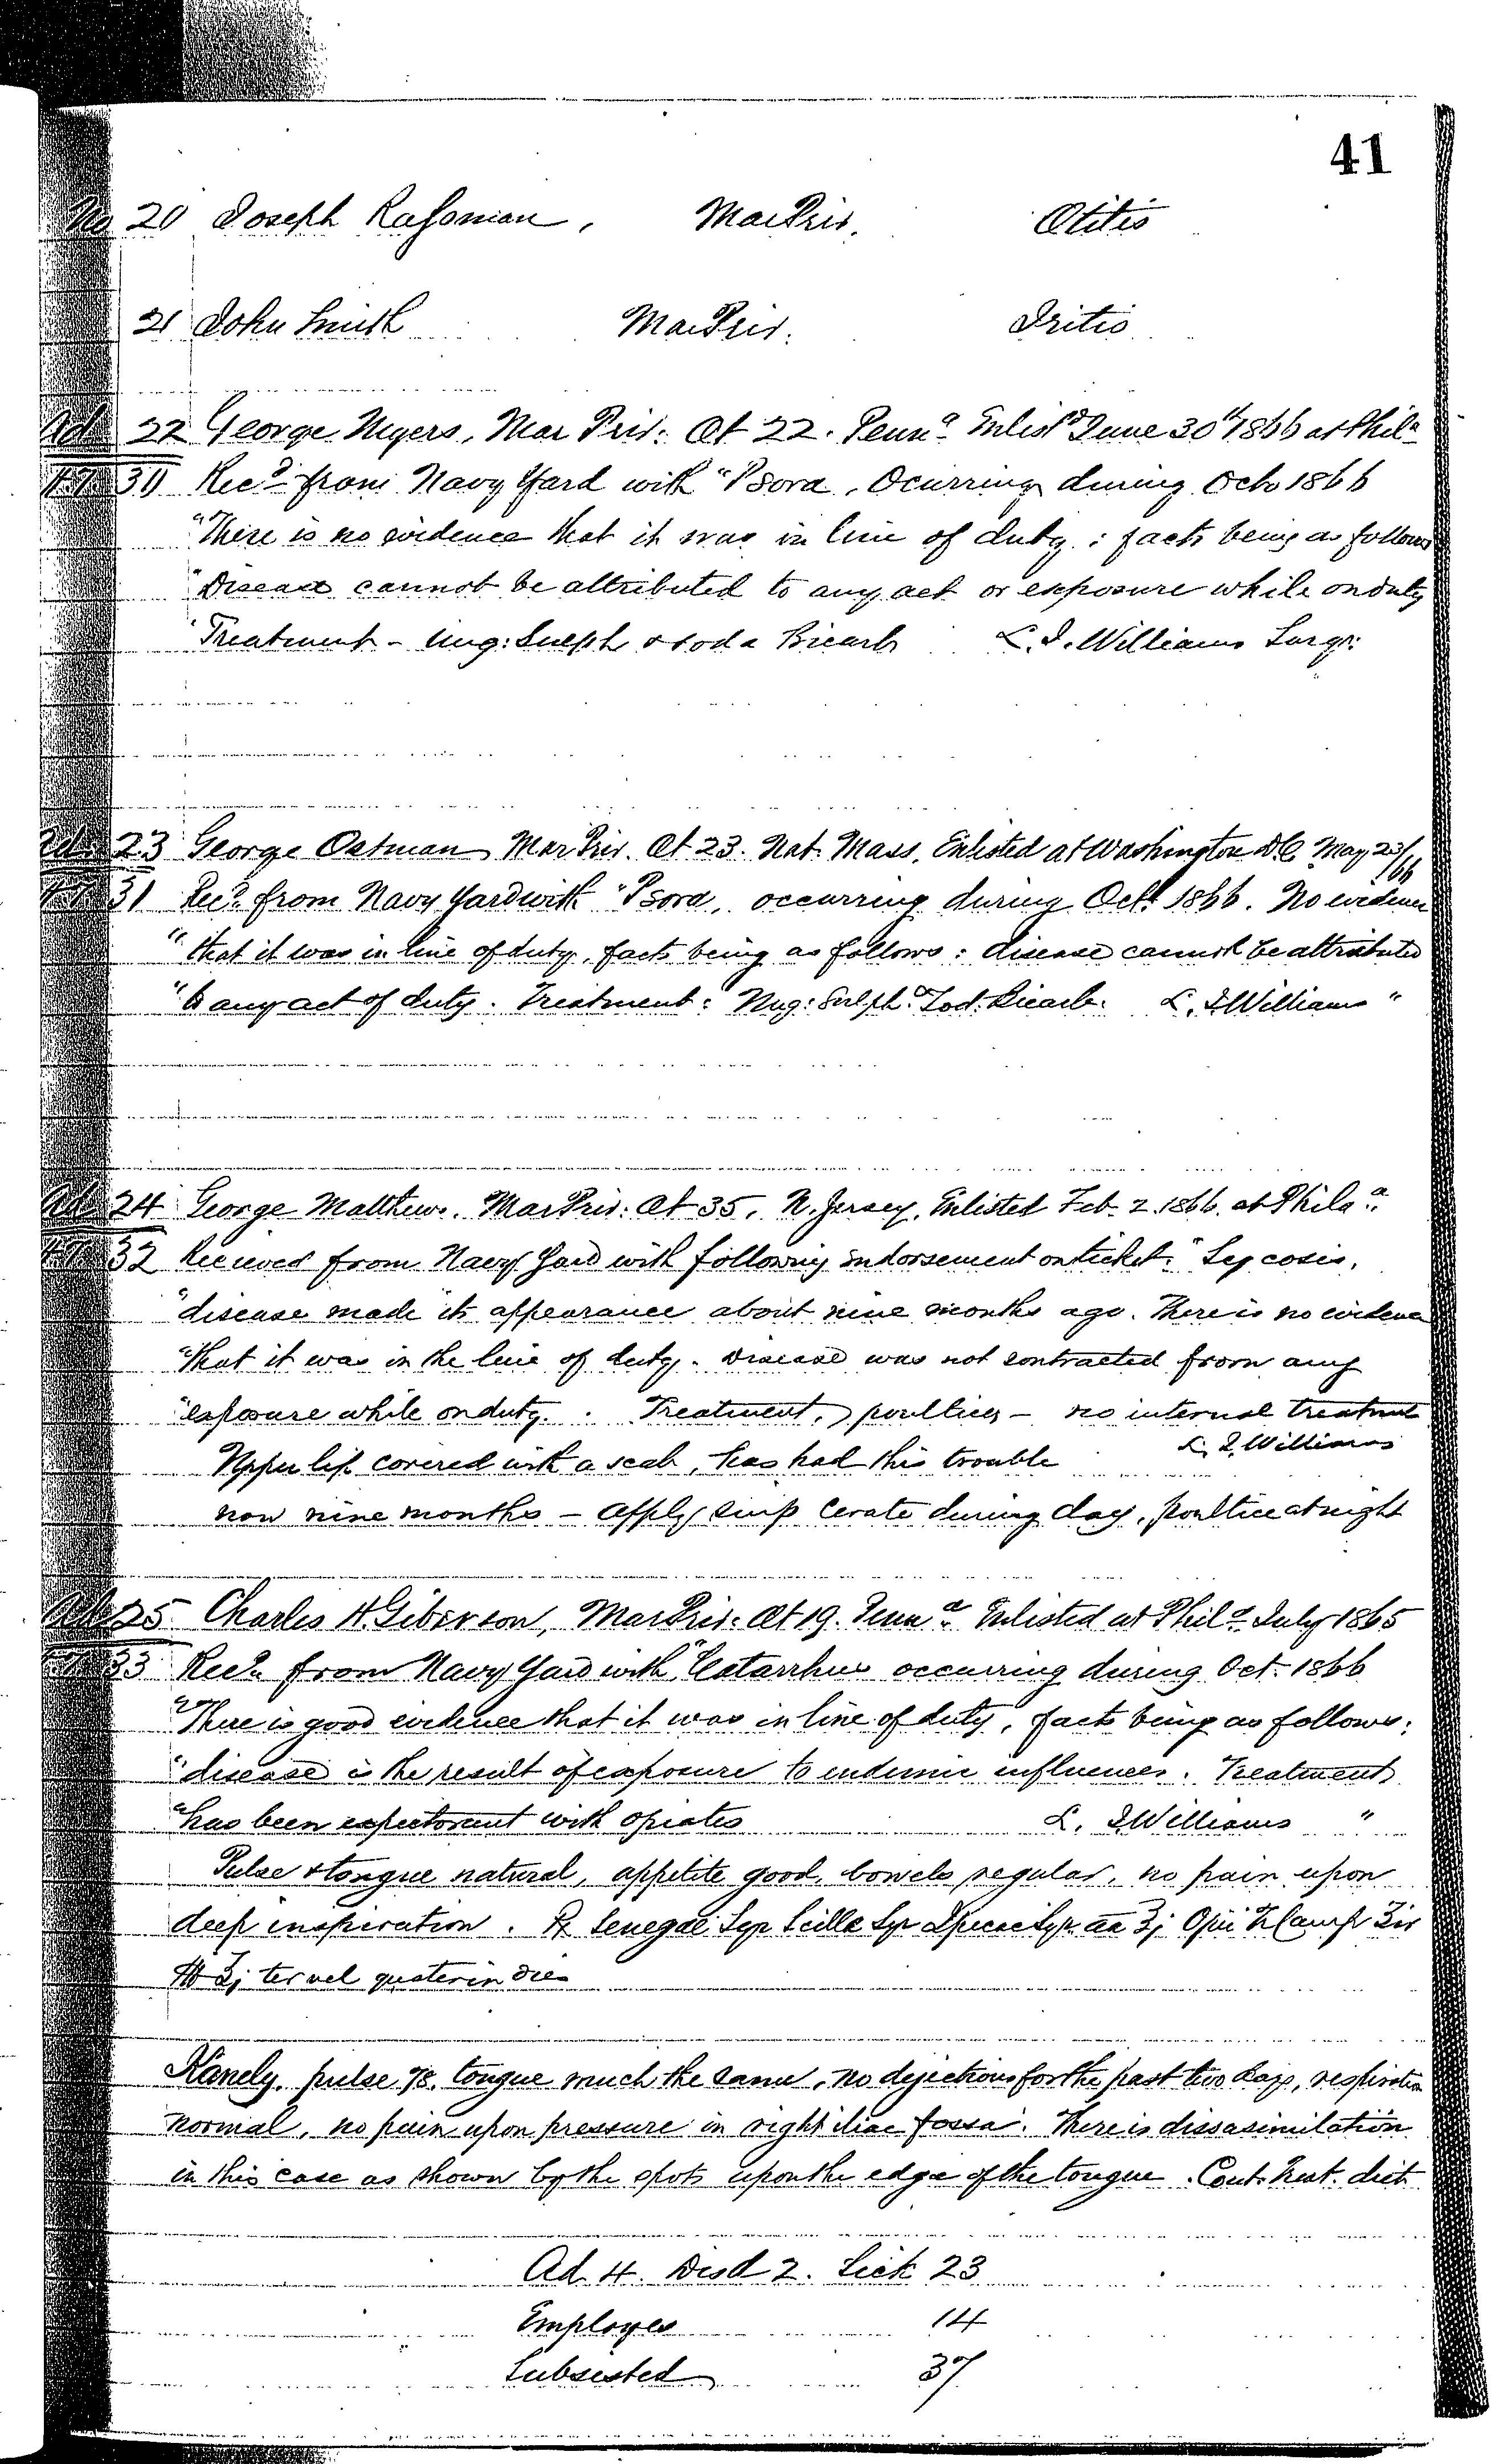 Patients in the Naval Hospital, Washington DC, on October 30, 1866, page 2 of 2, in the Medical Journal, October 1, 1866 to March 20, 1867